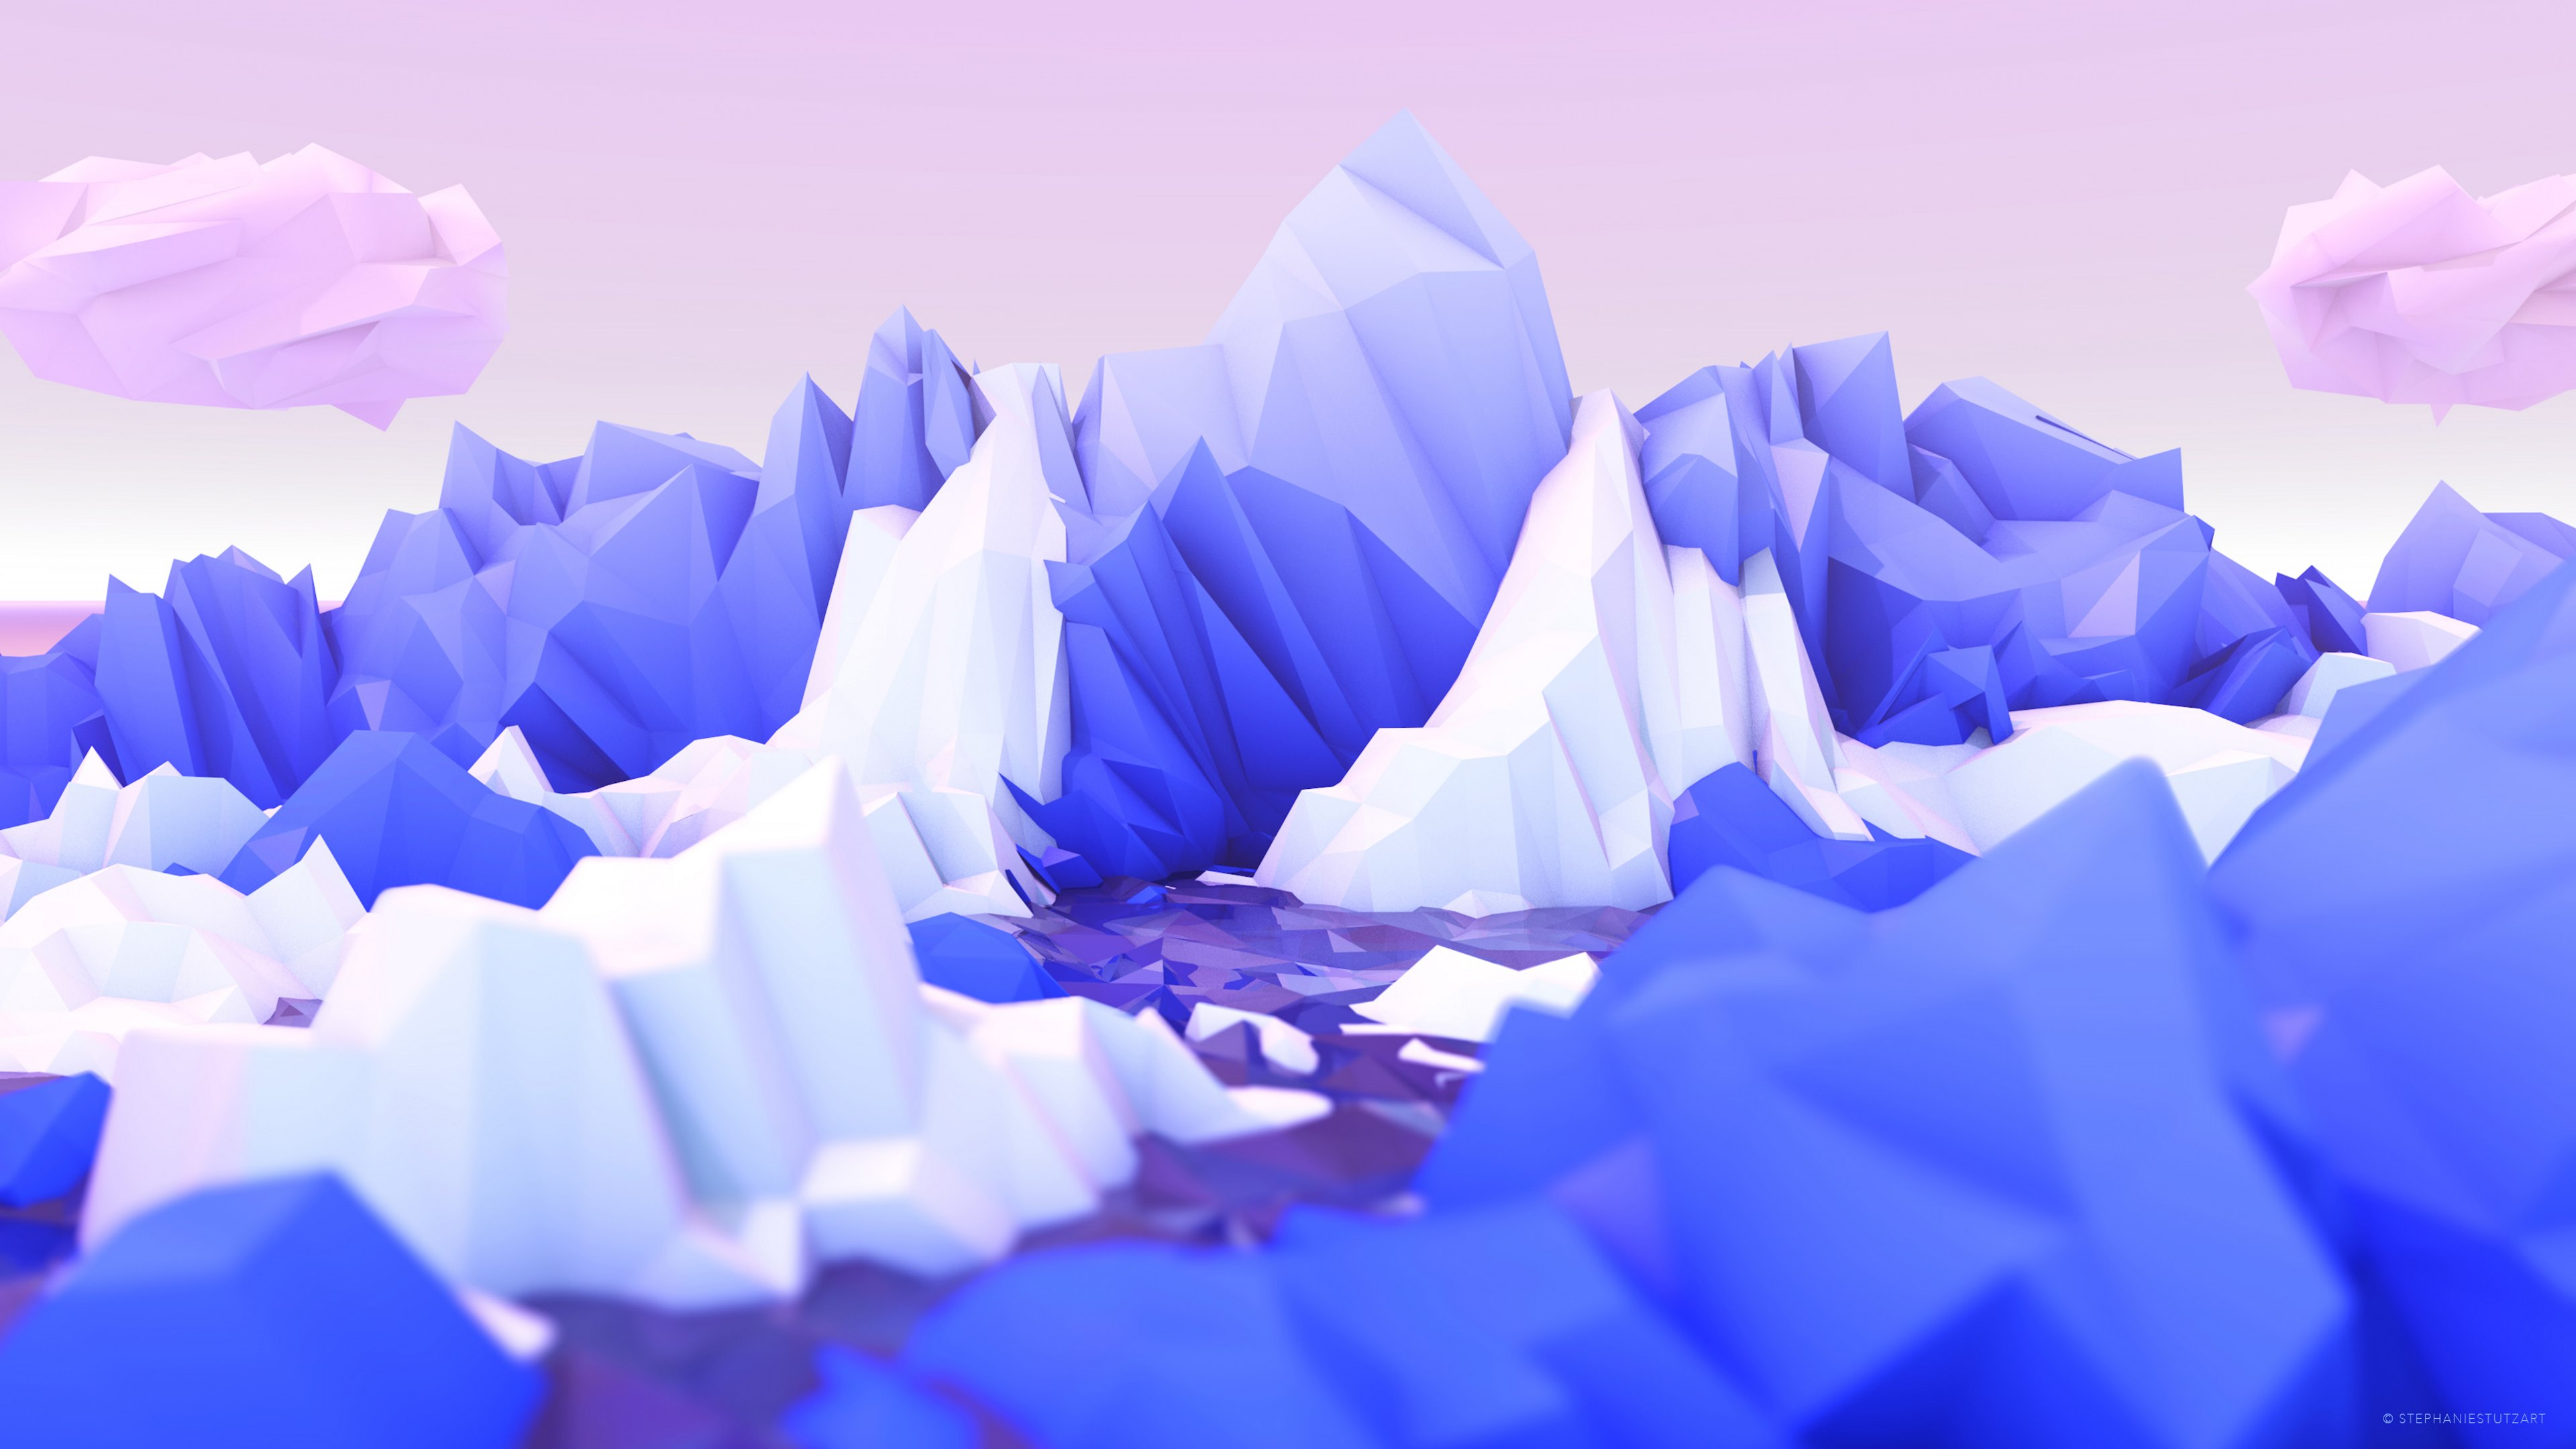 Low Poly Wallpapers · 4K HD Desktop Backgrounds Phone Images